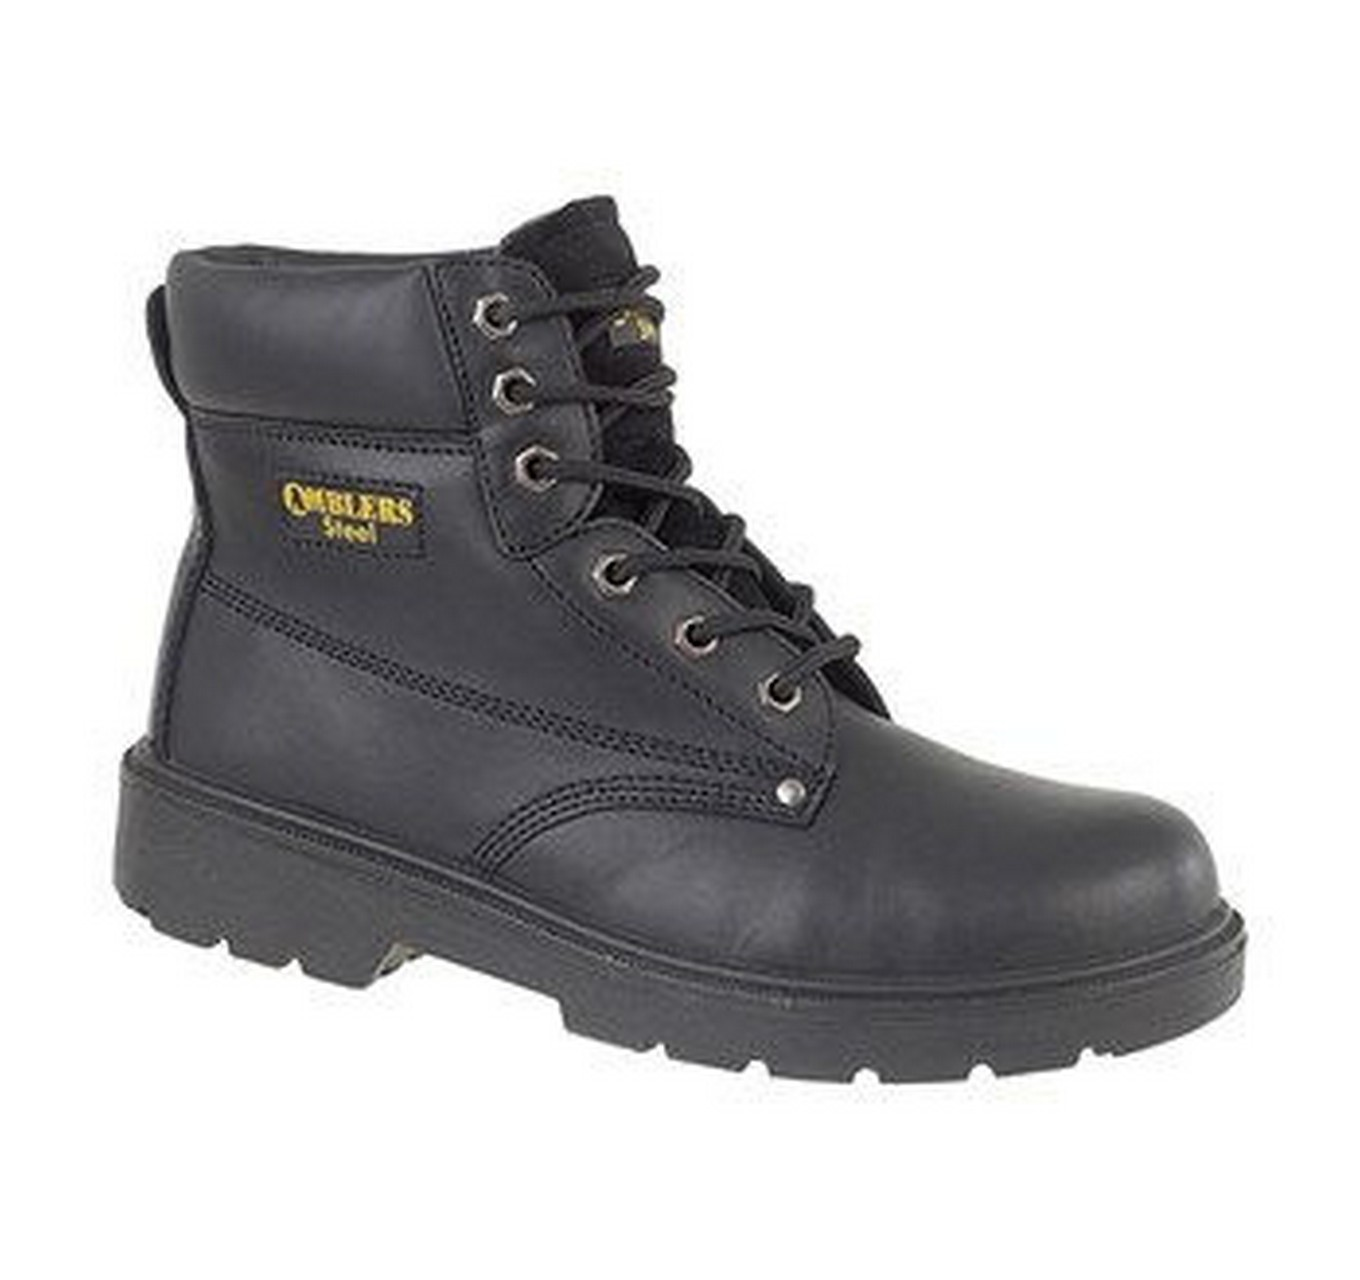 Safety Boot Amblers Fs159 12